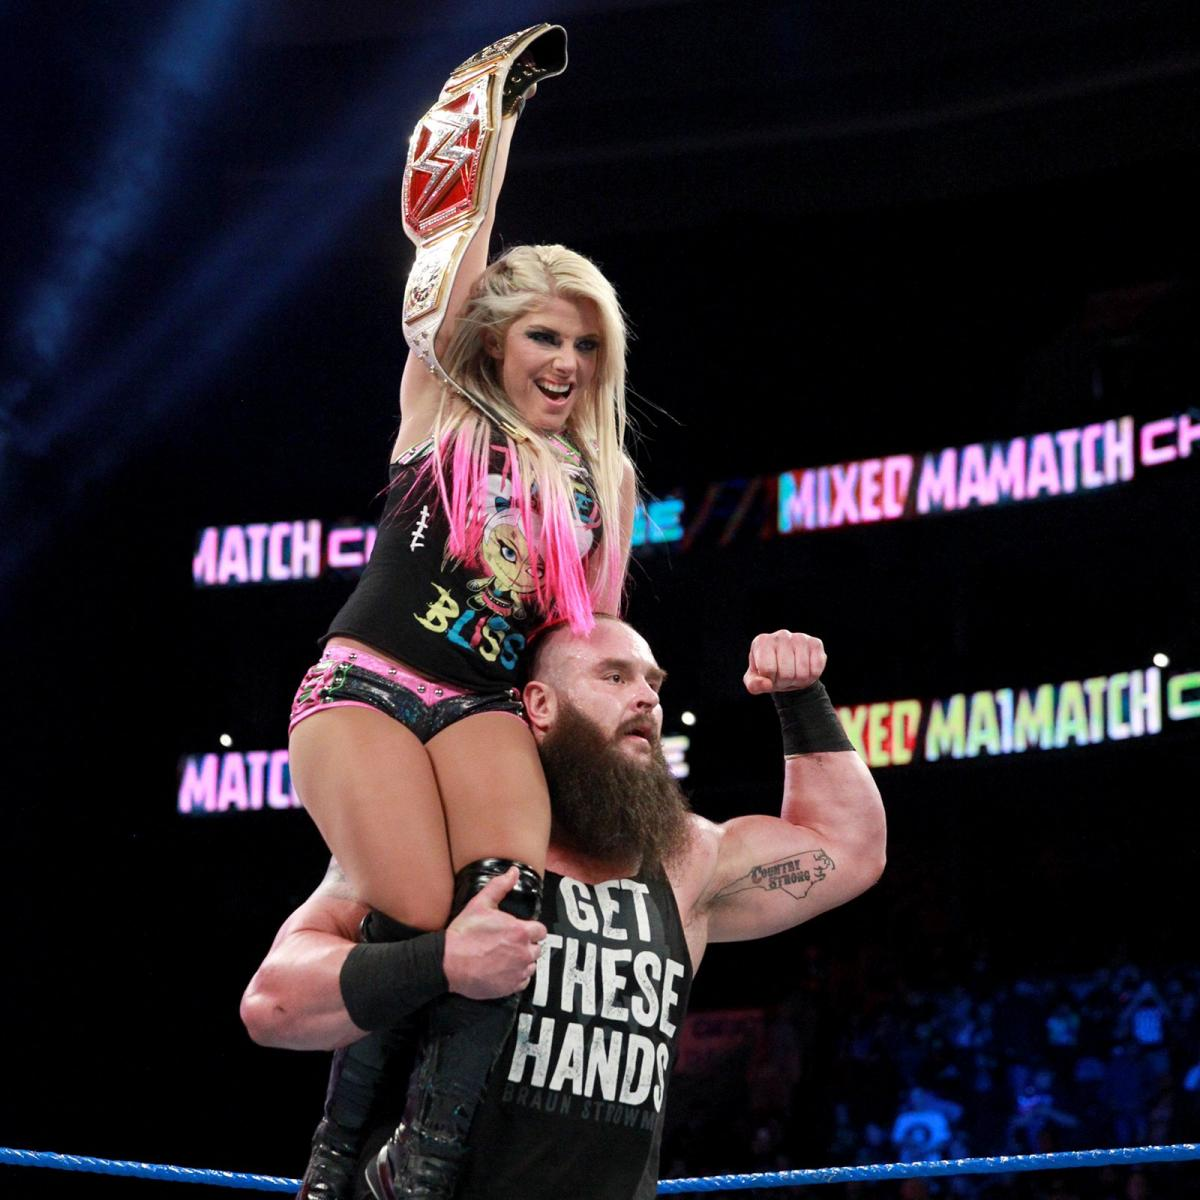 Alexa Bliss With Brawn Strawman